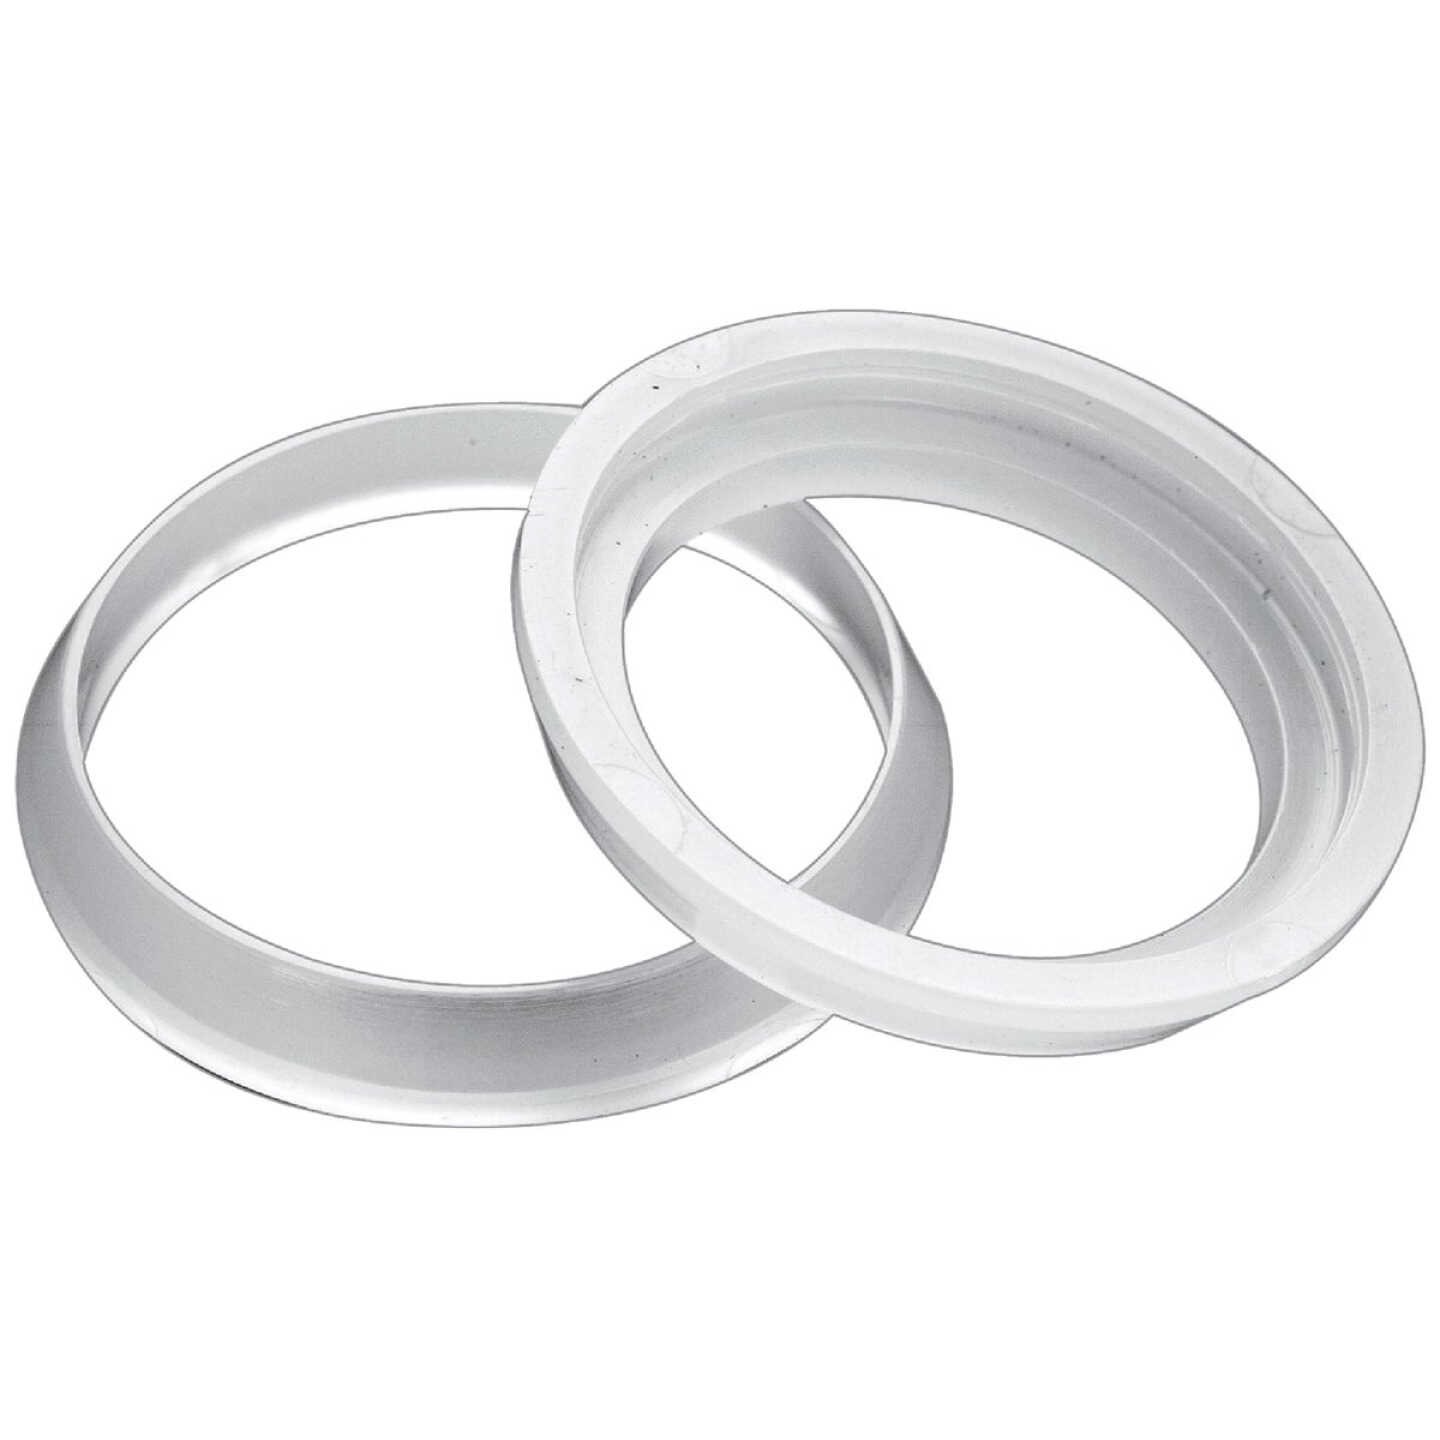 Do it 1-1/4 In. x 1-1/4 In. Clear Poly Slip Joint Washer (2 Pack) Image 1